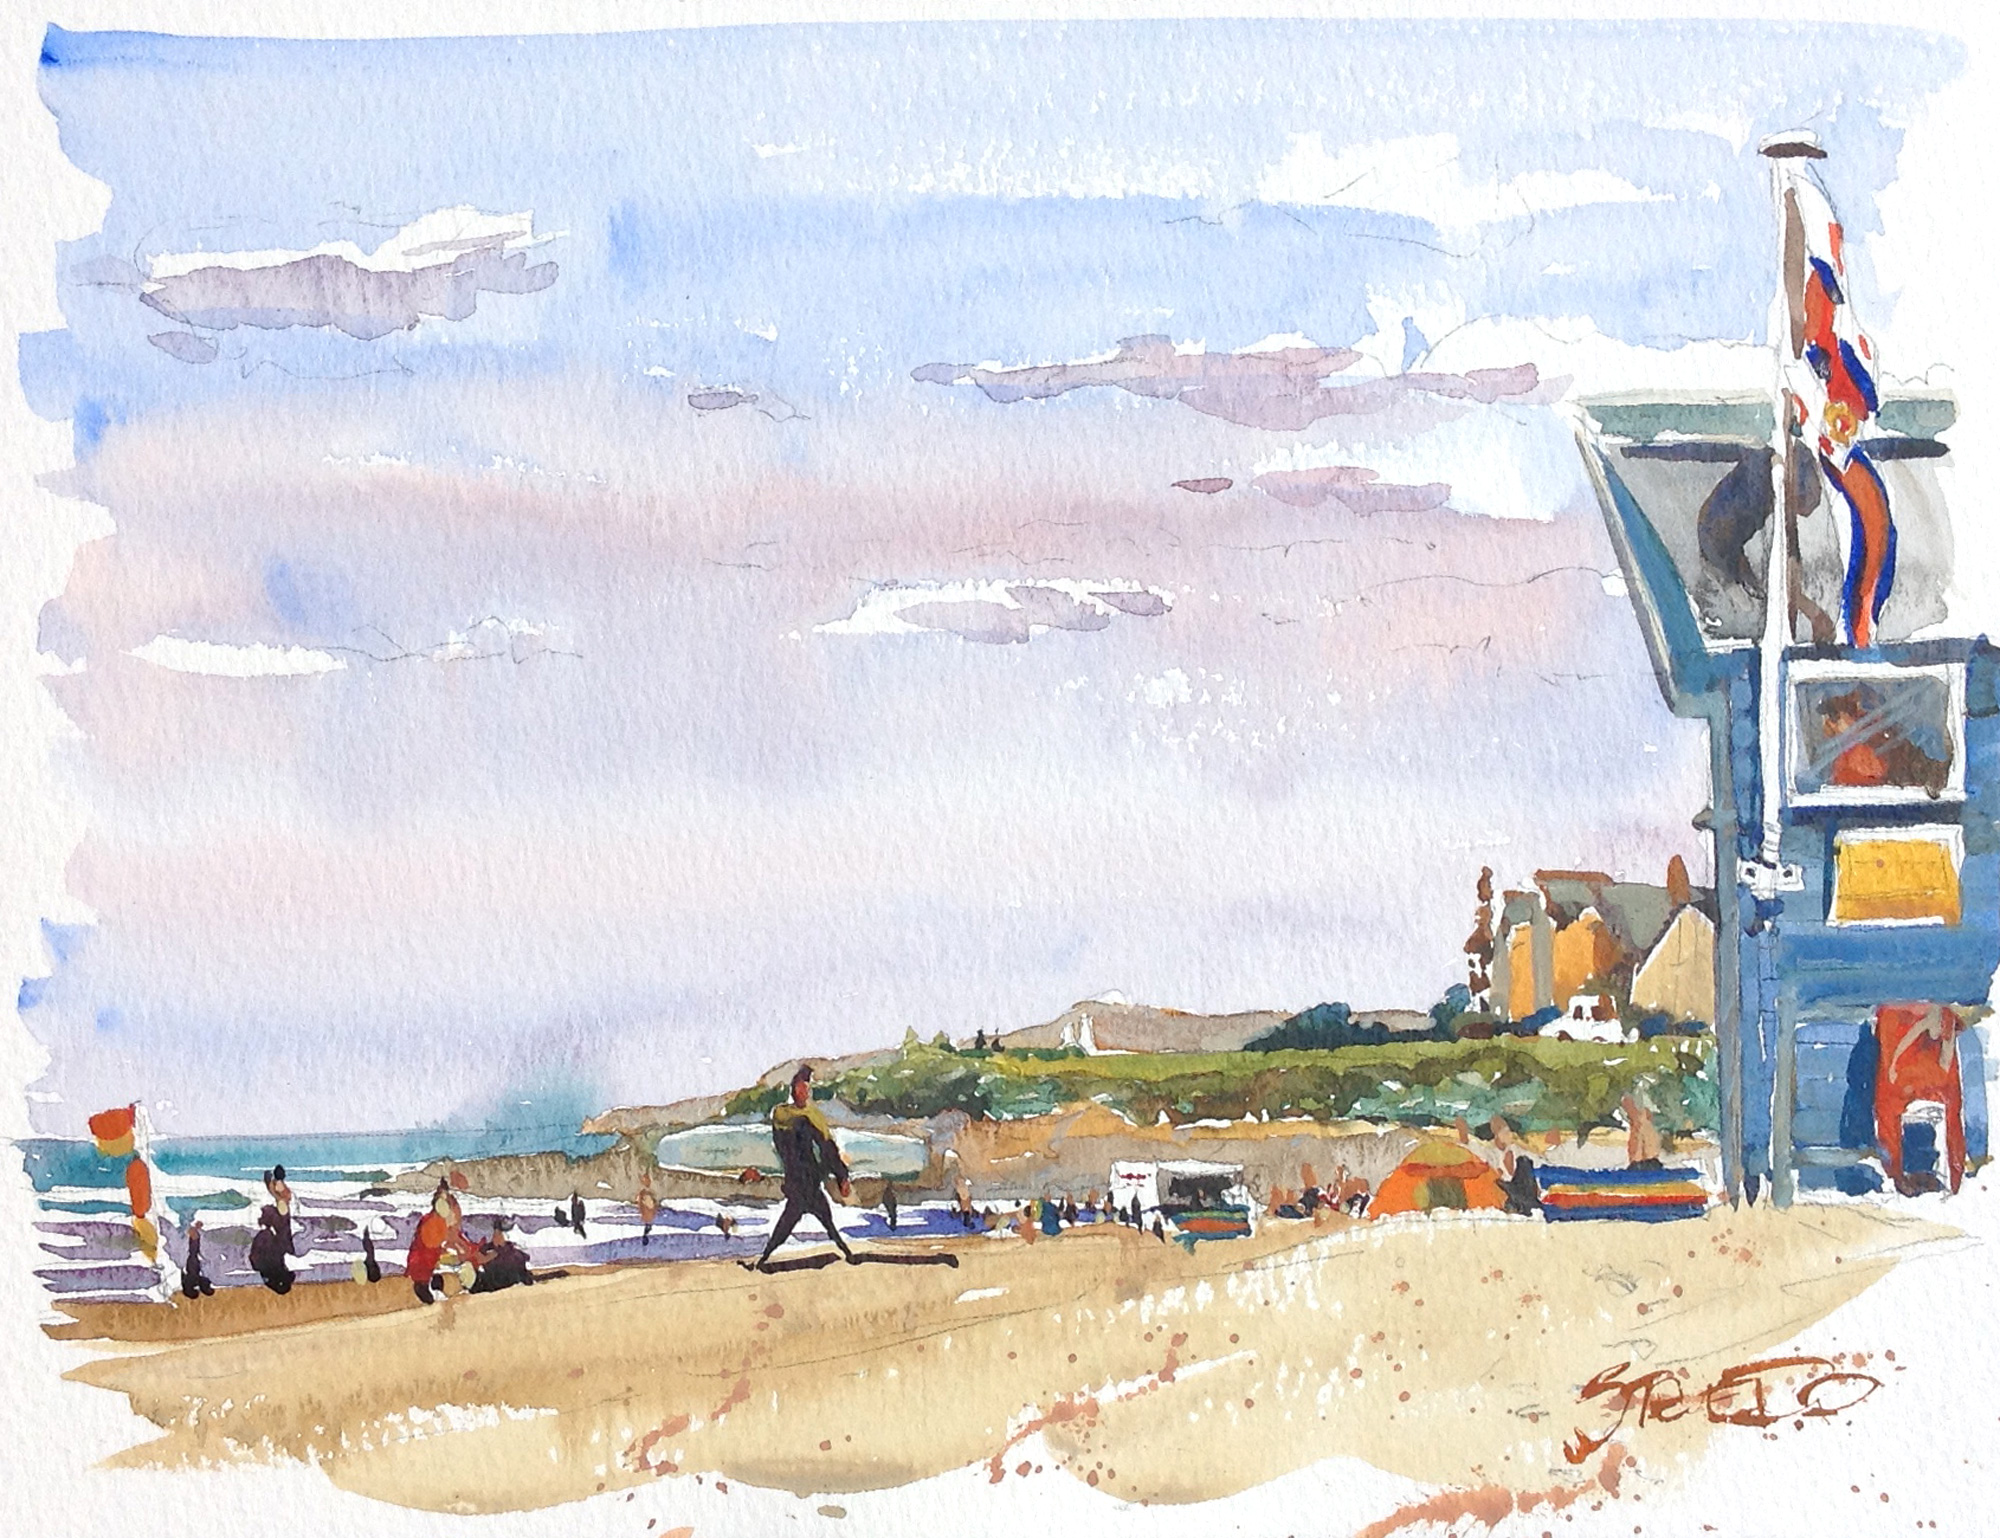 Surfers and sunbathers on Woolacombe Beach, Devon. Watercolour painting by Steve PP.